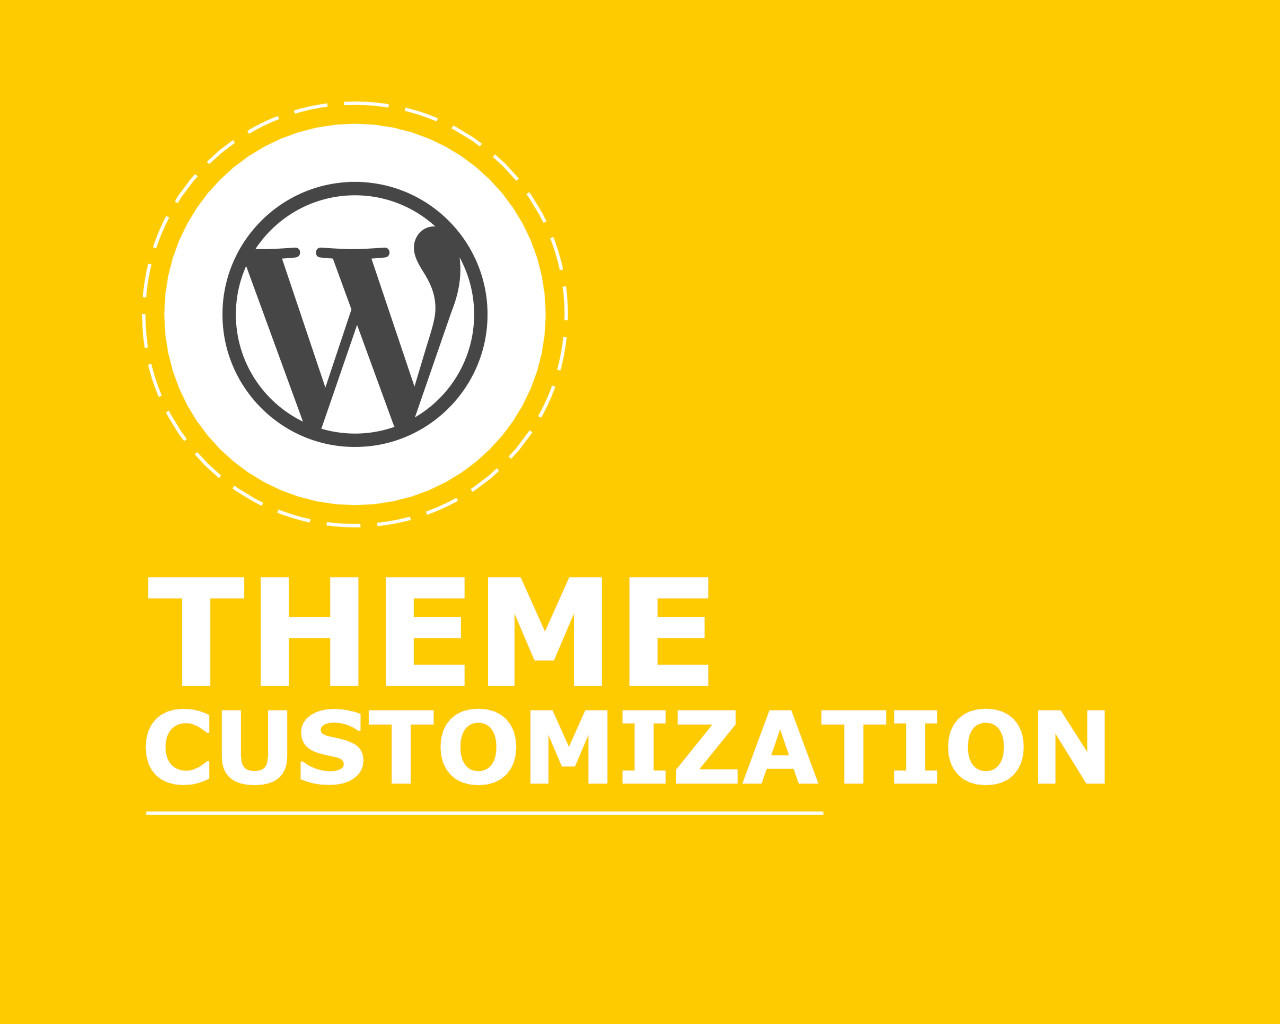 WordPress Theme Customization by jassdesigngroup - 105758